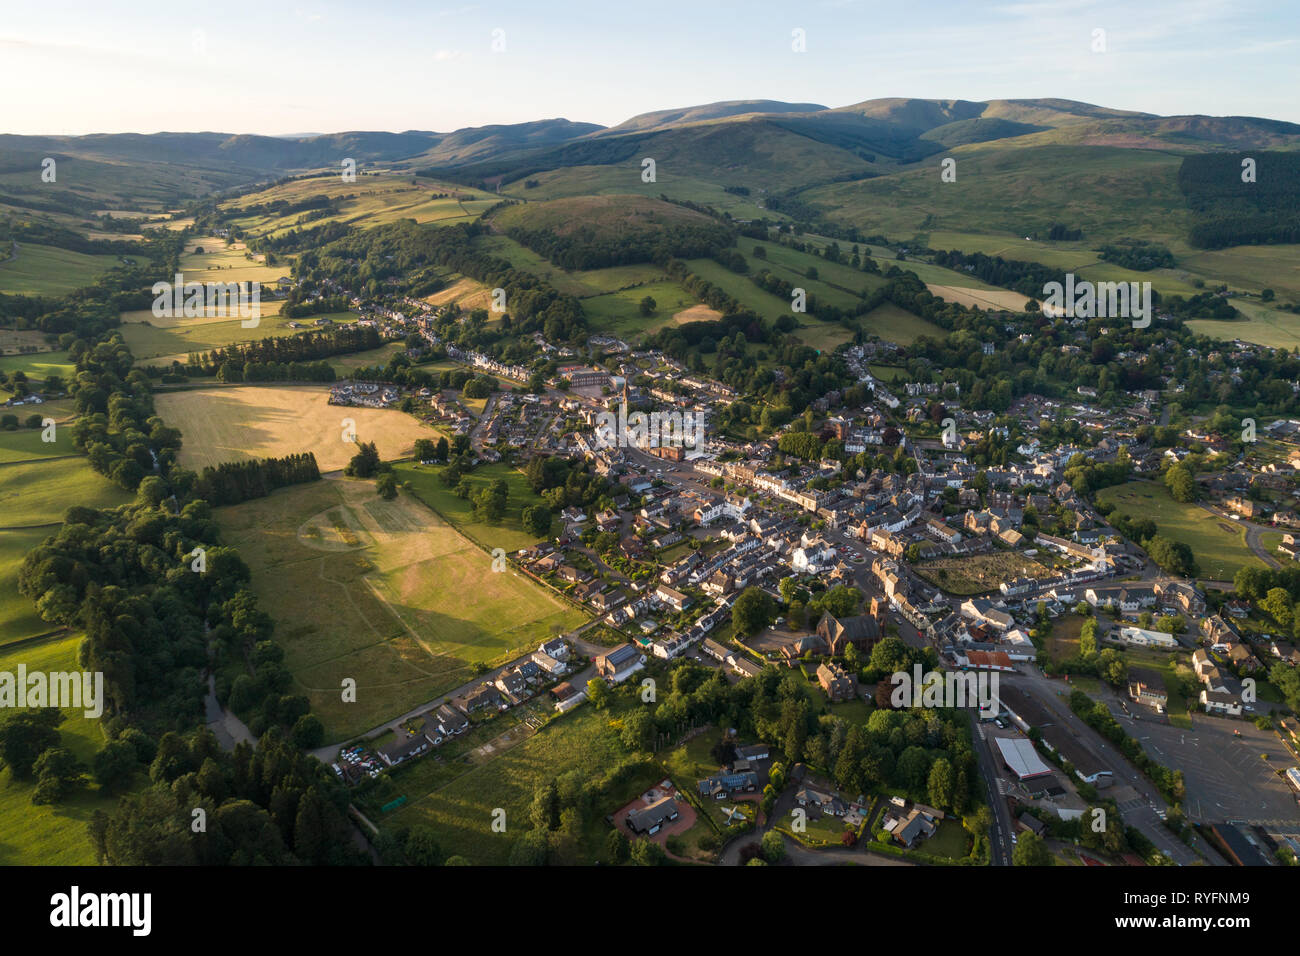 Aerial image of the Scottish Border market town of Moffat in Dumfries and Galloway. - Stock Image